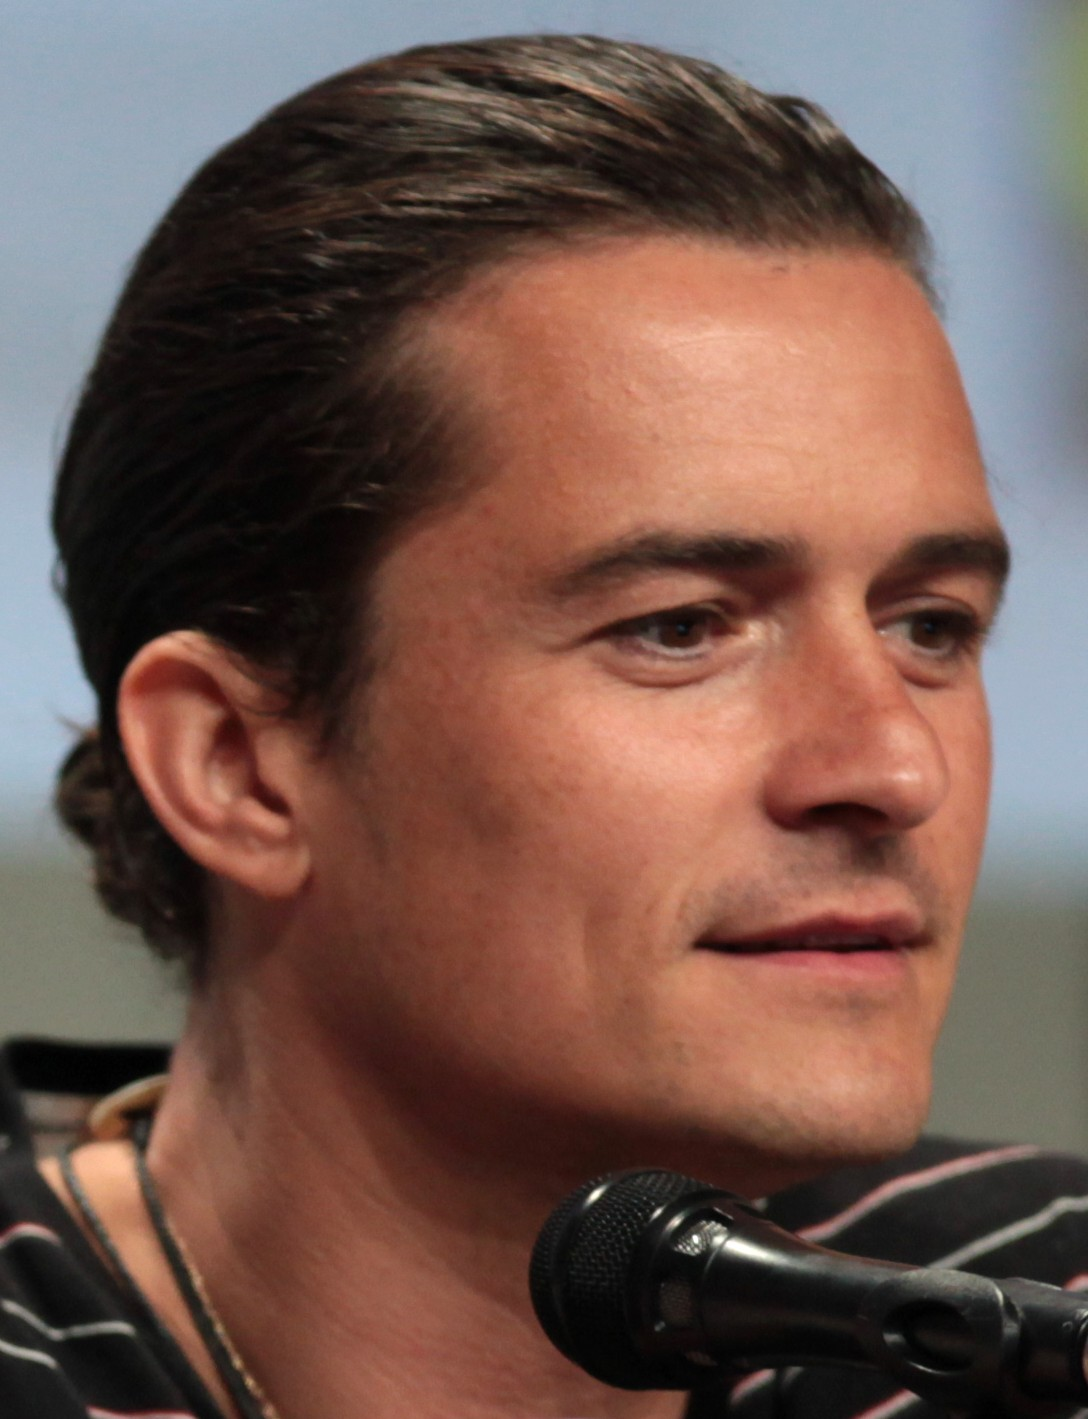 Description Orlando Bloom 2014 Comic Con (cropped).jpg